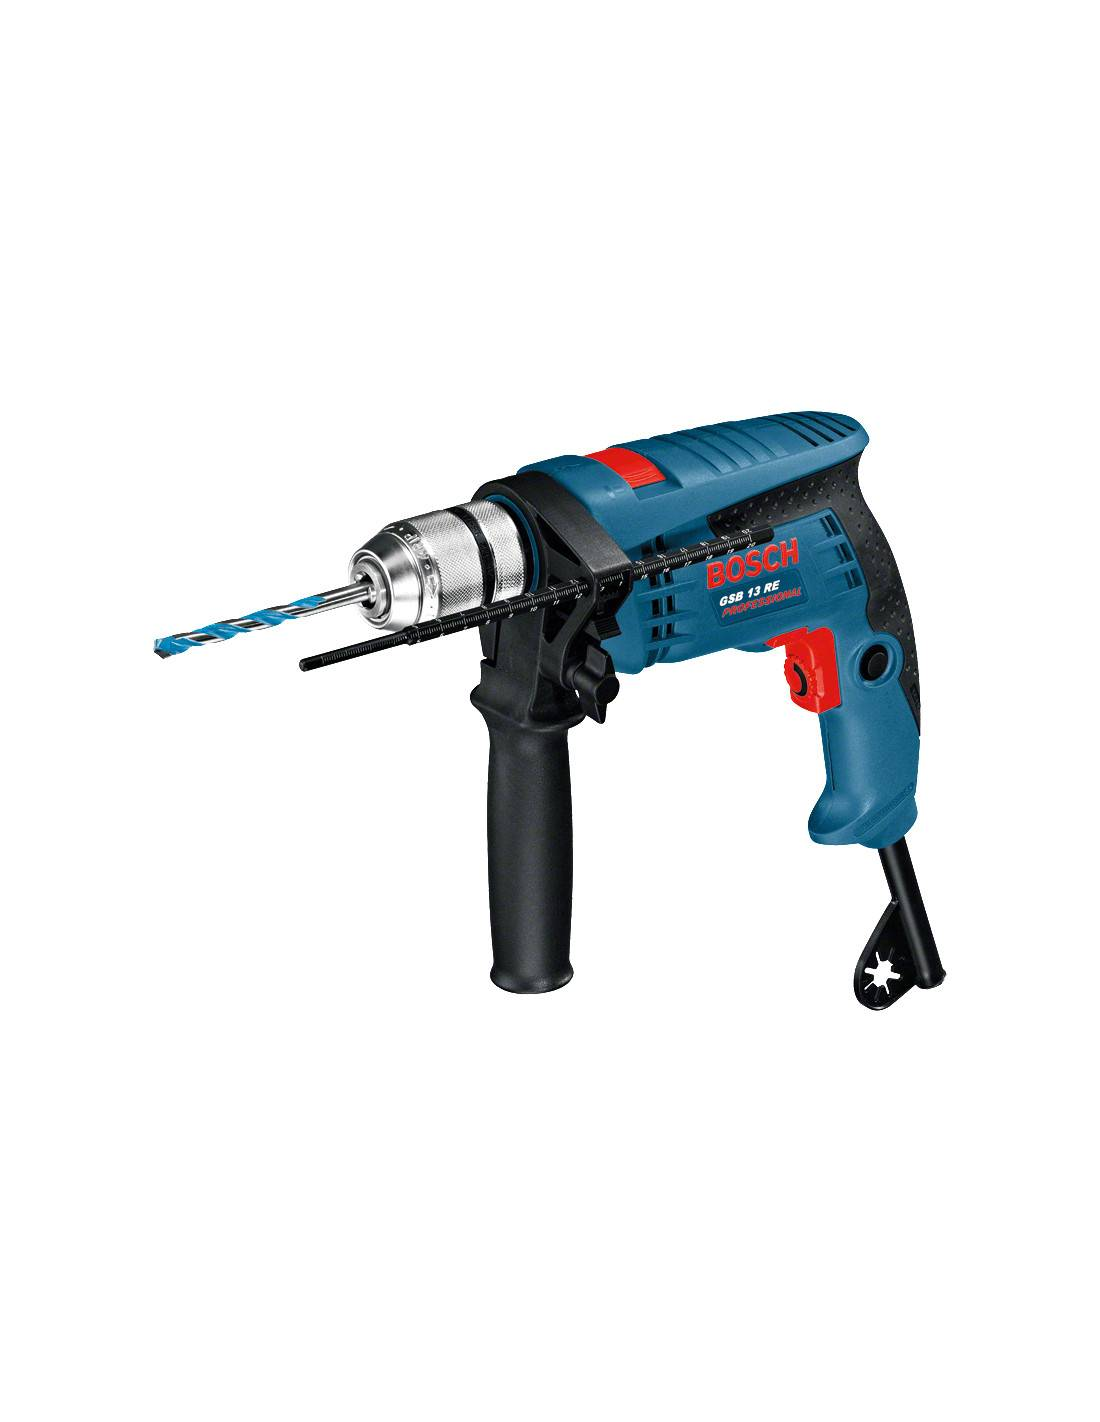 BOSCH - Perceuse à percussion 600W GSB 13 RE en coffret standard - 0601217101